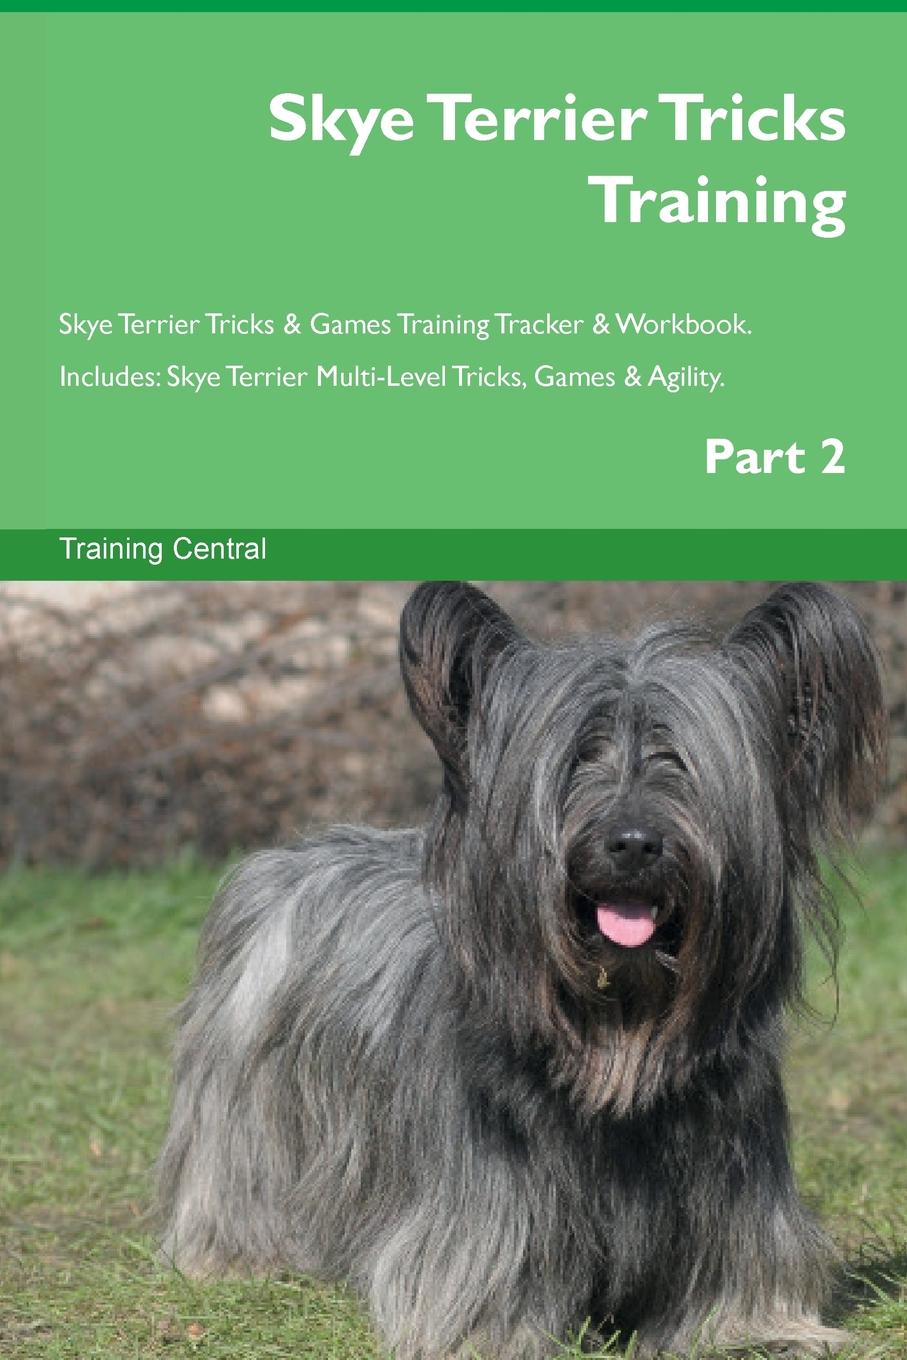 Training Central Skye Terrier Tricks Training Skye Terrier Tricks . Games Training Tracker . Workbook. Includes. Skye Terrier Multi-Level Tricks, Games . Agility. Part 2 tristan skye natural transitioning an ftm alternative second edition